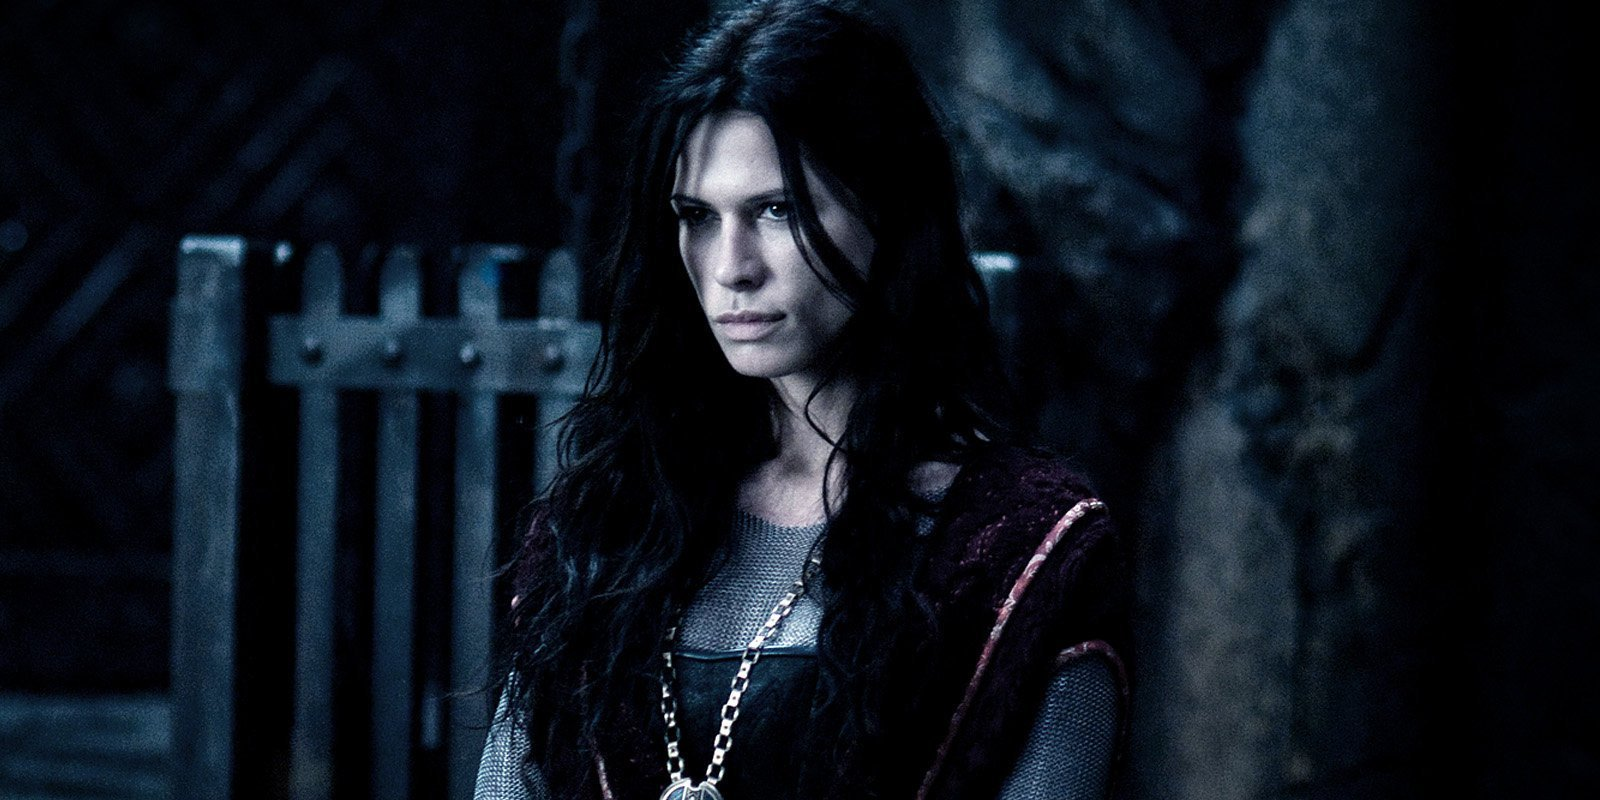 Rhona Mitra in Rise of the Lycans